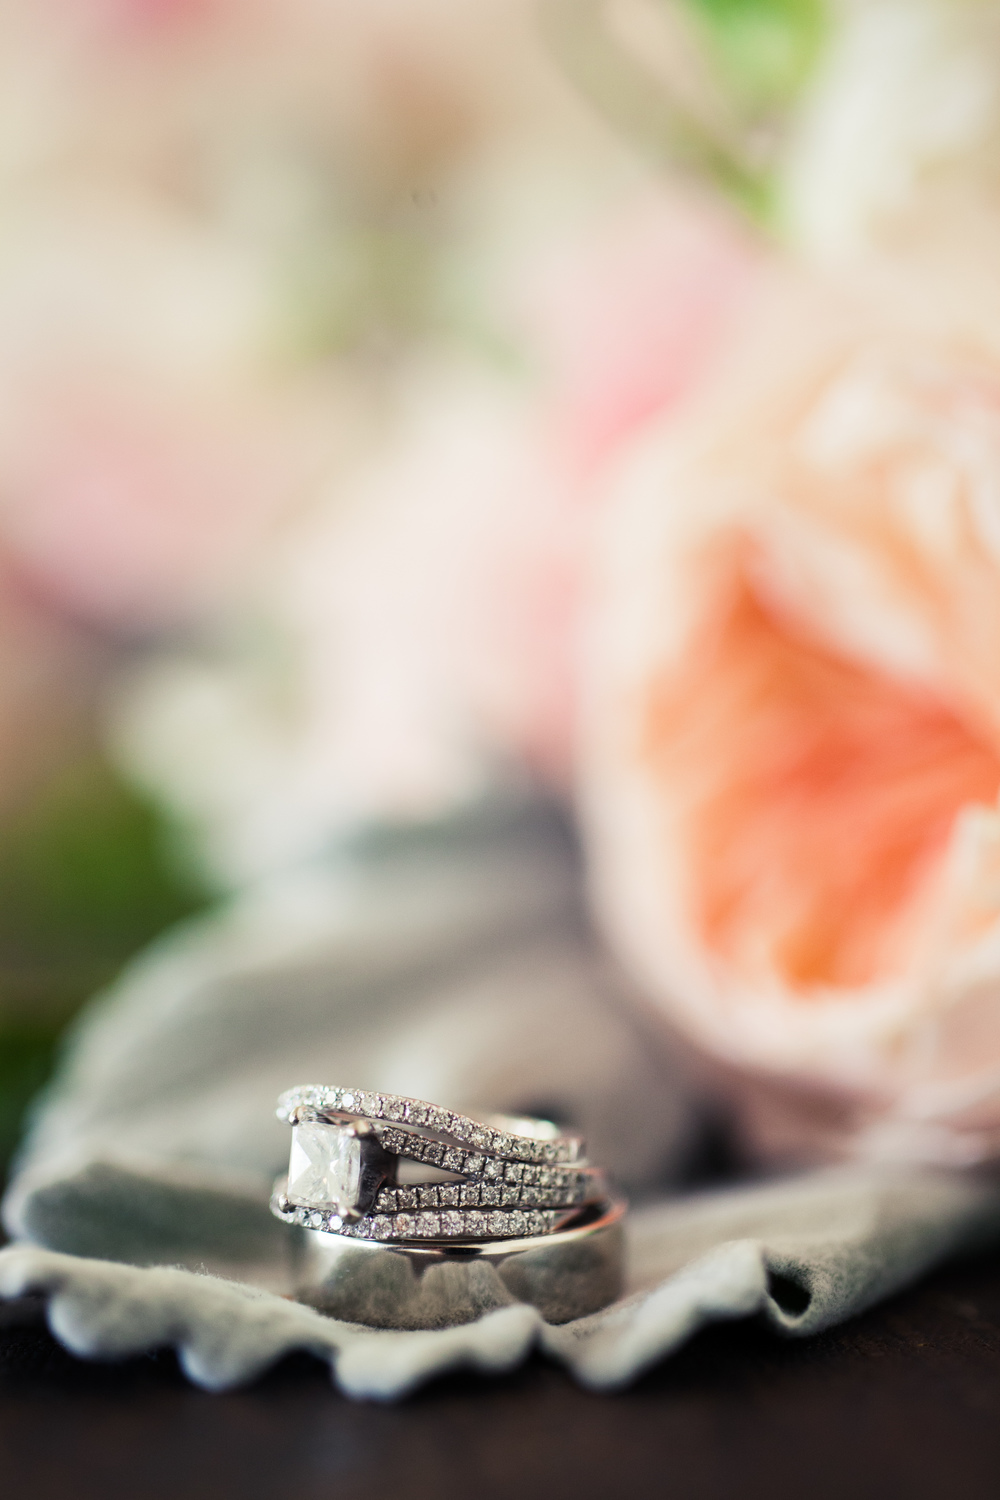 Paige-Newton-Photography-Wedding-Details-Wedding-Ring-Shot.jpg